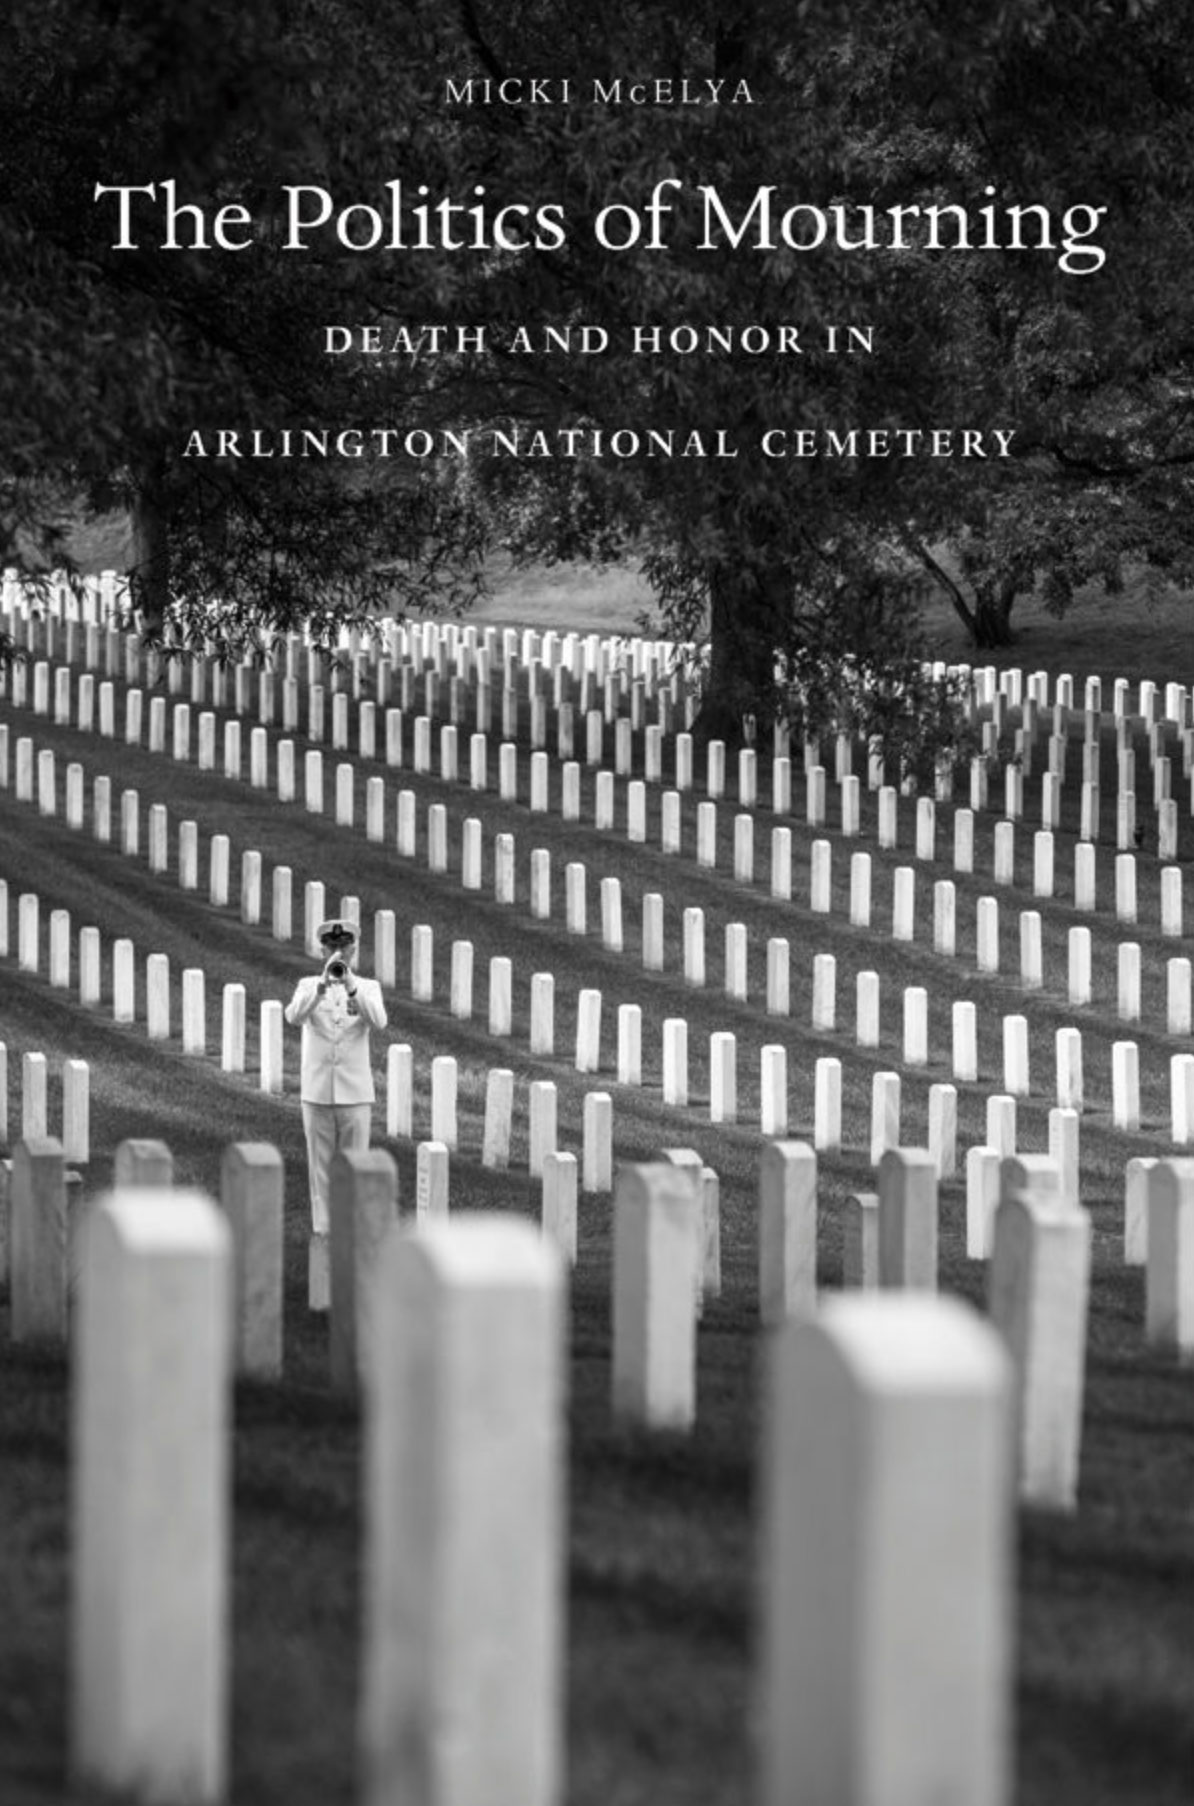 The Politics of Mourning, Death and Honor in Arlington National Cemetery – by Micki McElya